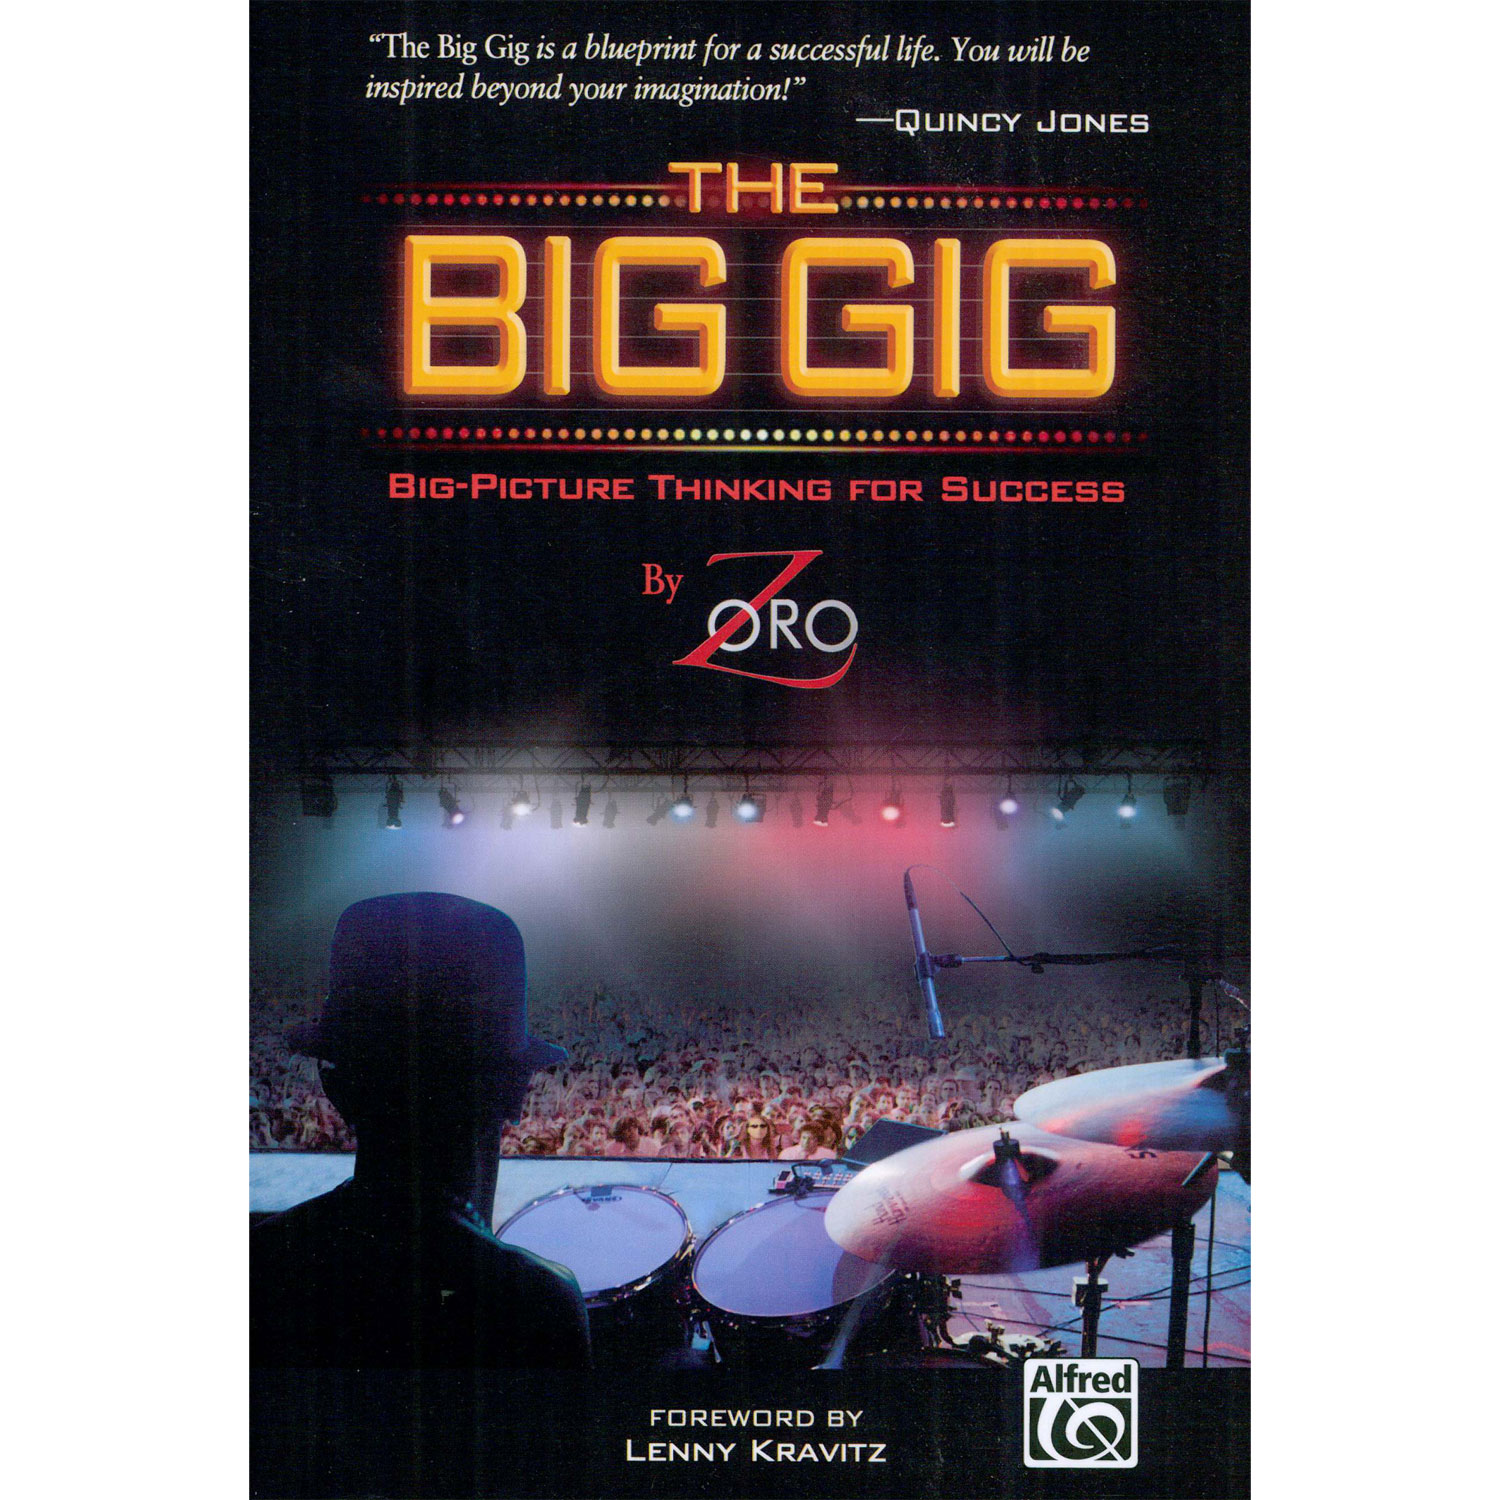 The Big Gig by Zoro